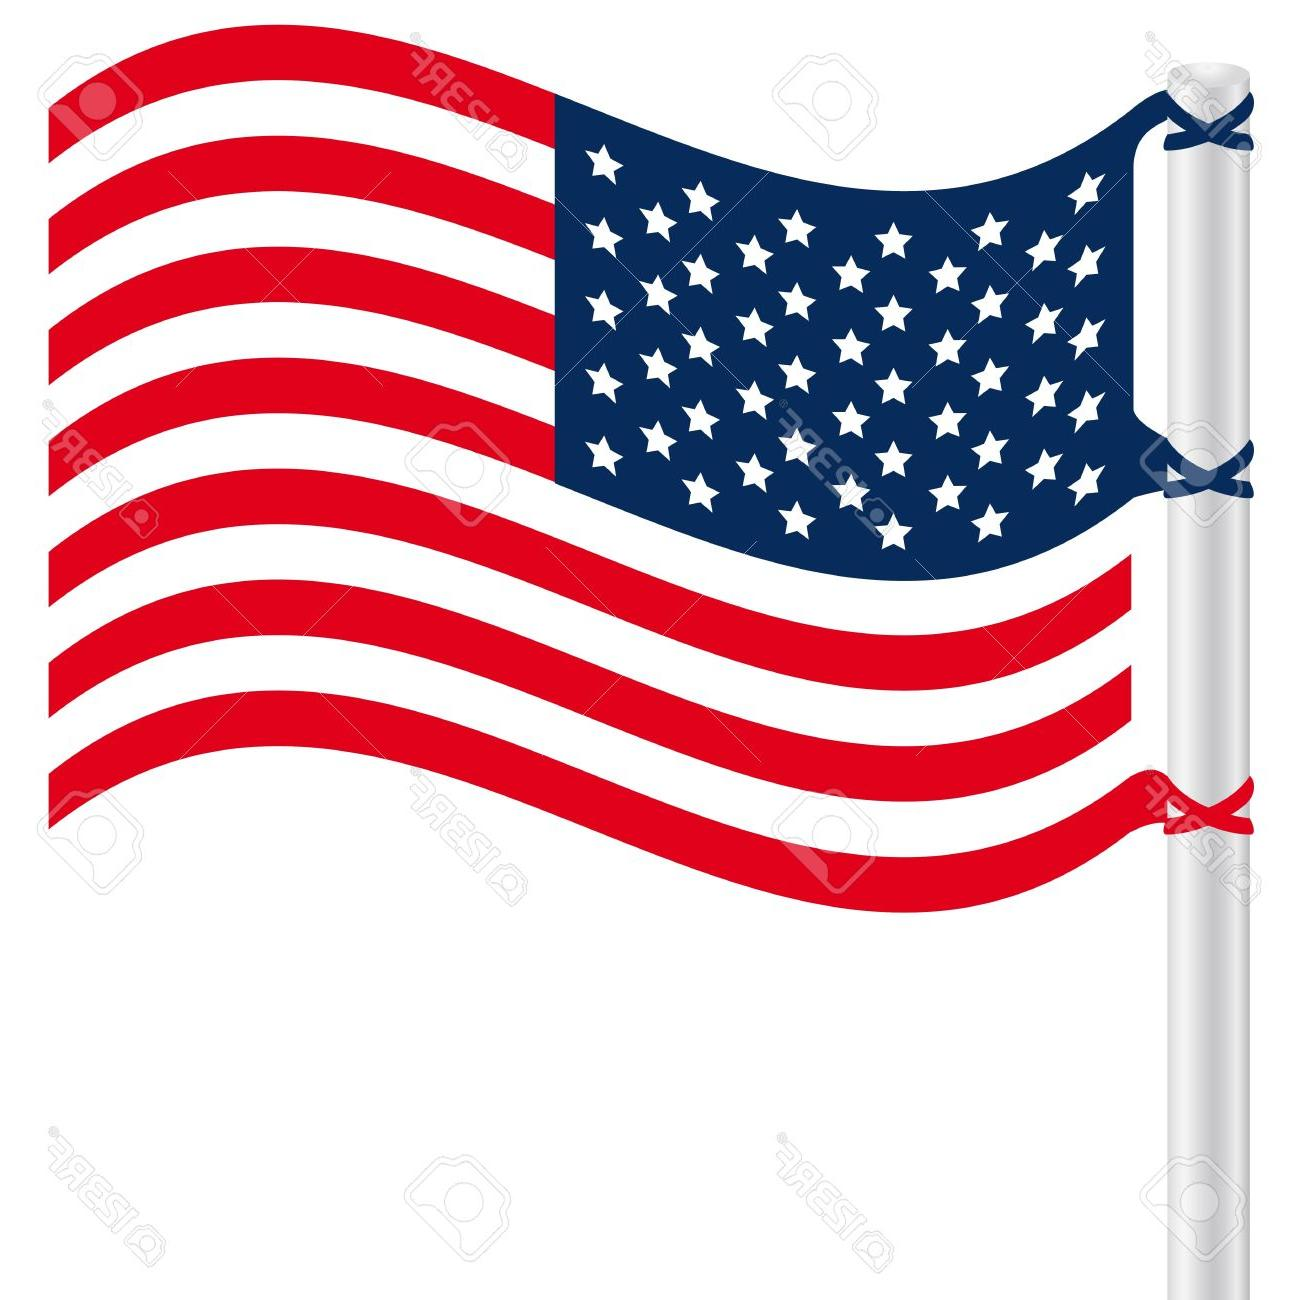 American flag clipart design picture royalty free Free Images American Flag Clipart | Free download best Free Images ... picture royalty free